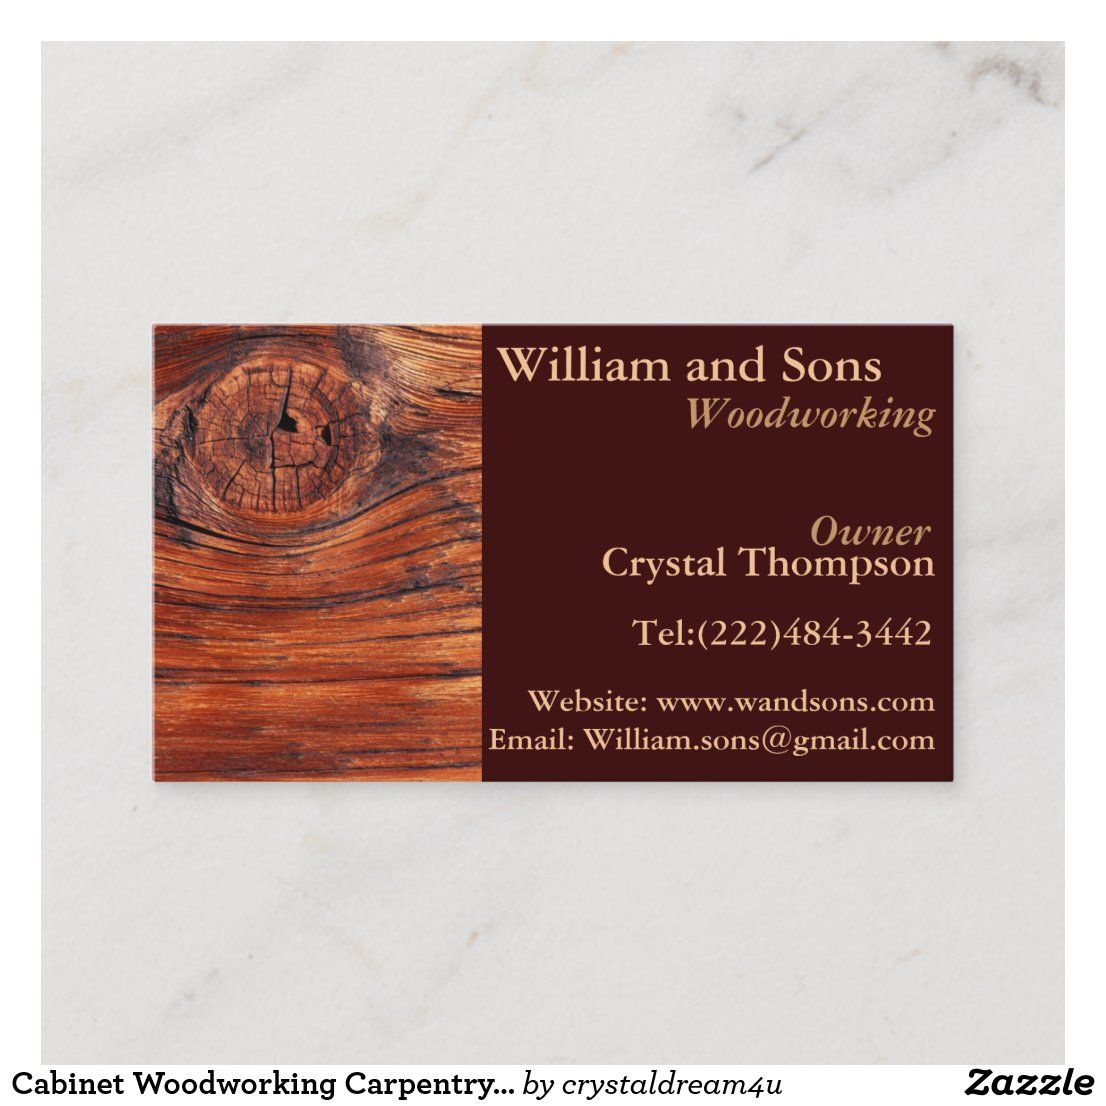 Cabinet Woodworking Carpentry Business Cards Zazzle Com Woodworking Carpentry Carpentry Wood Business Cards